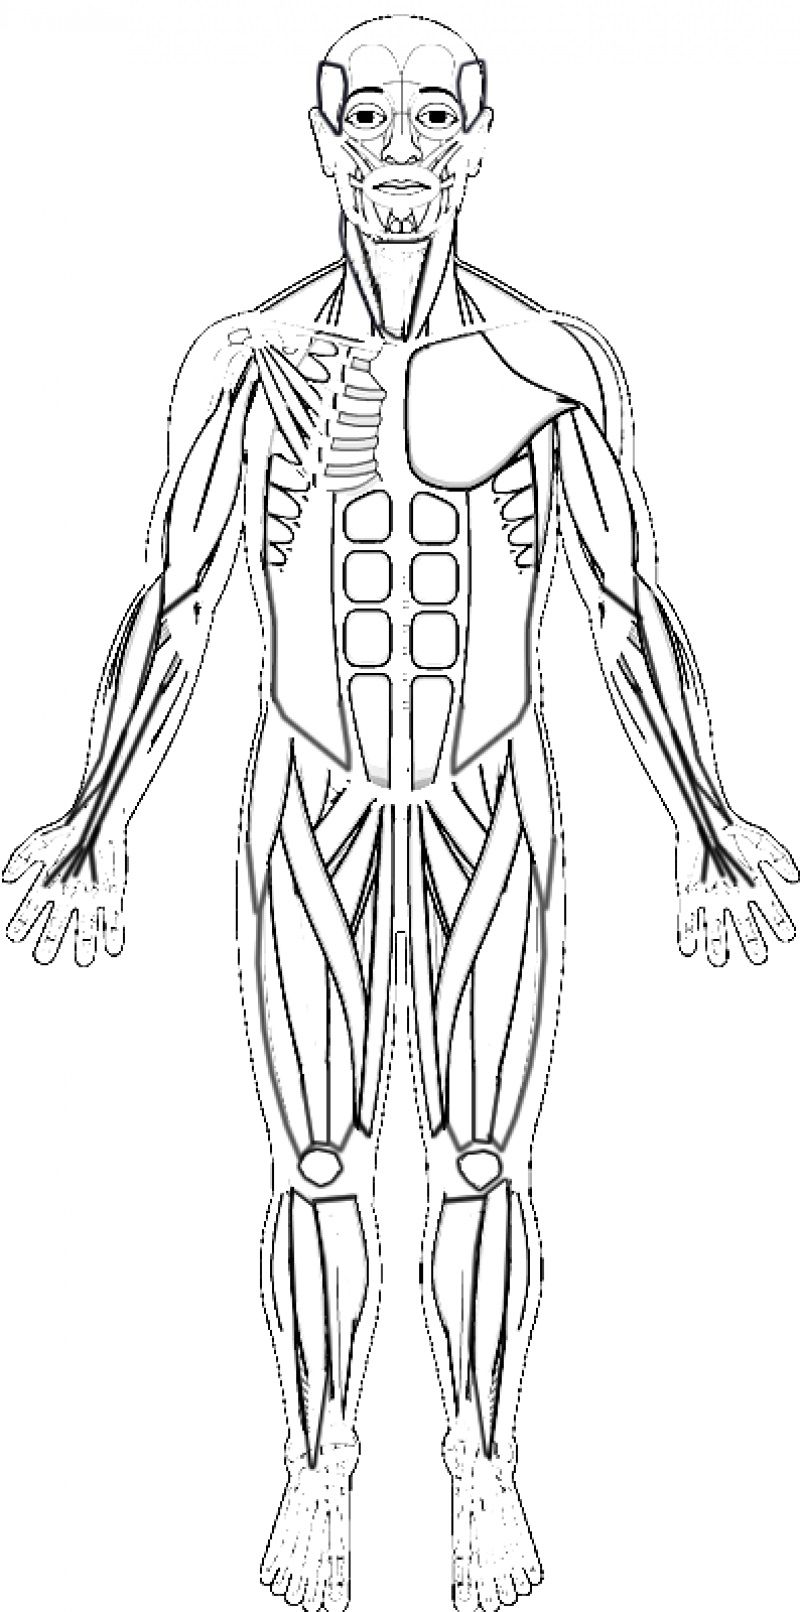 Human Muscles Coloring Key Skeleton Drawing Easy Muscle System